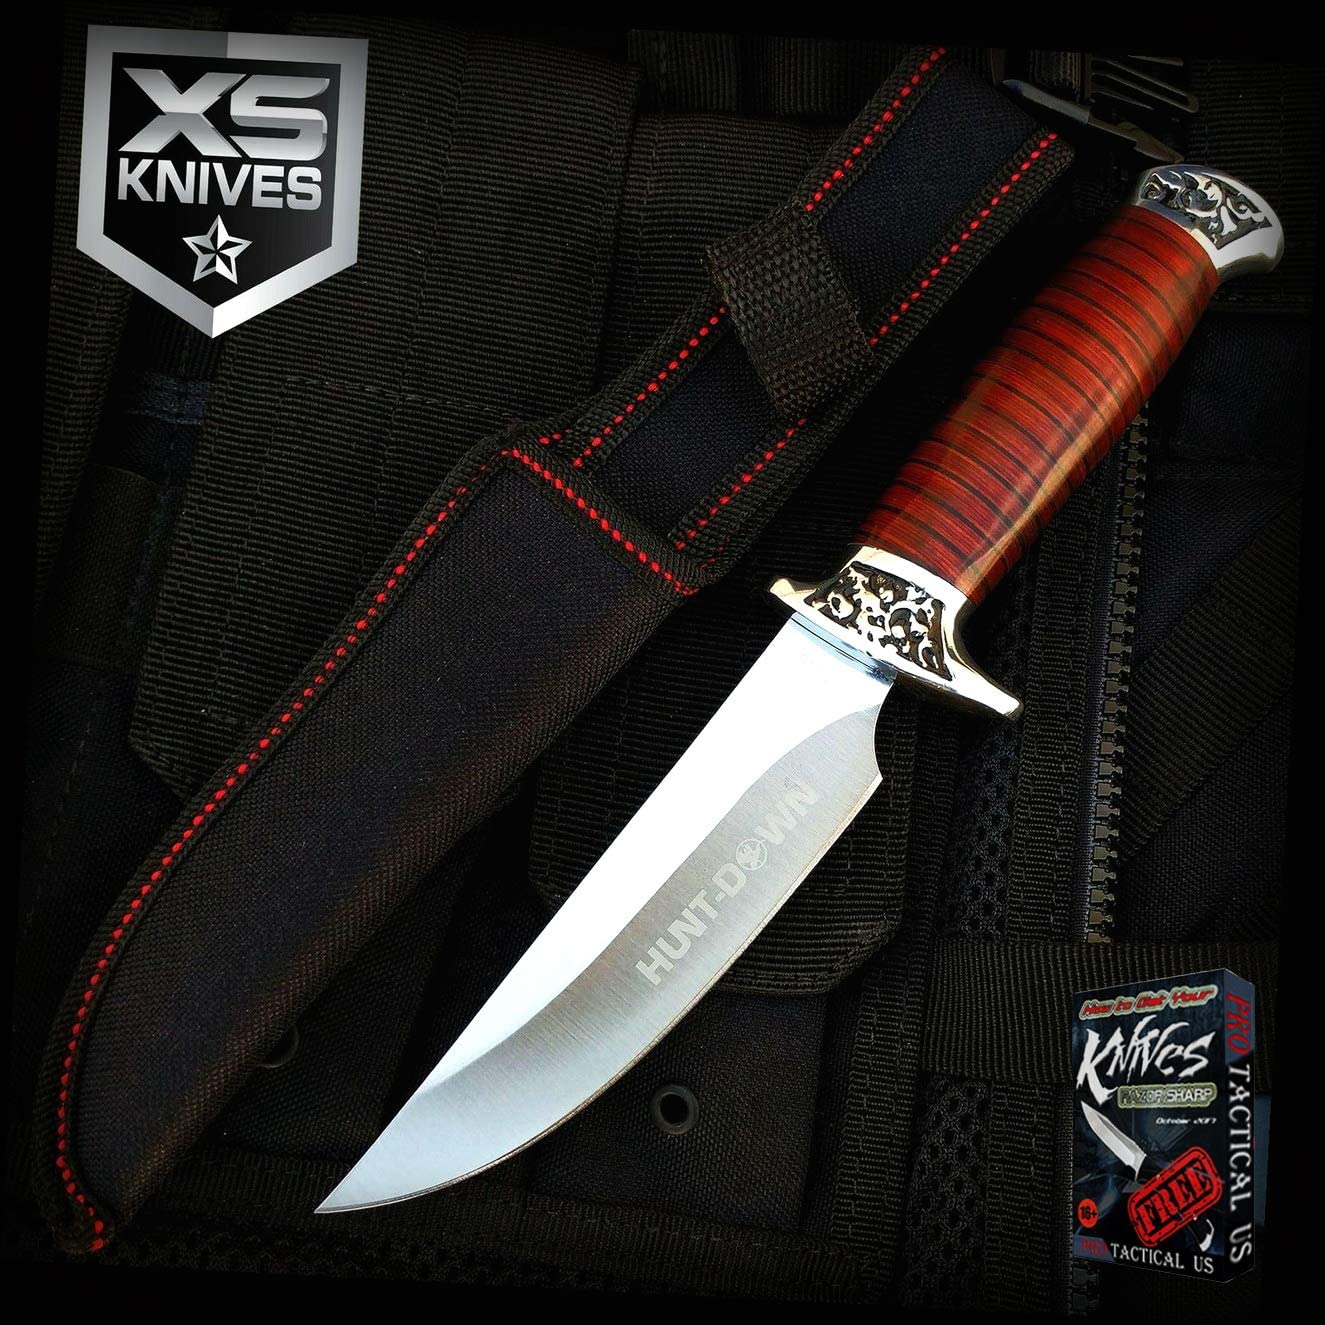 10-inch Hunt-Down Fixed Blade SURVIVAL Wood Handle Hunting Pro Tactical Elite Knife Skinner W/Sheath XS196K + Free eBook by ProTactical-US